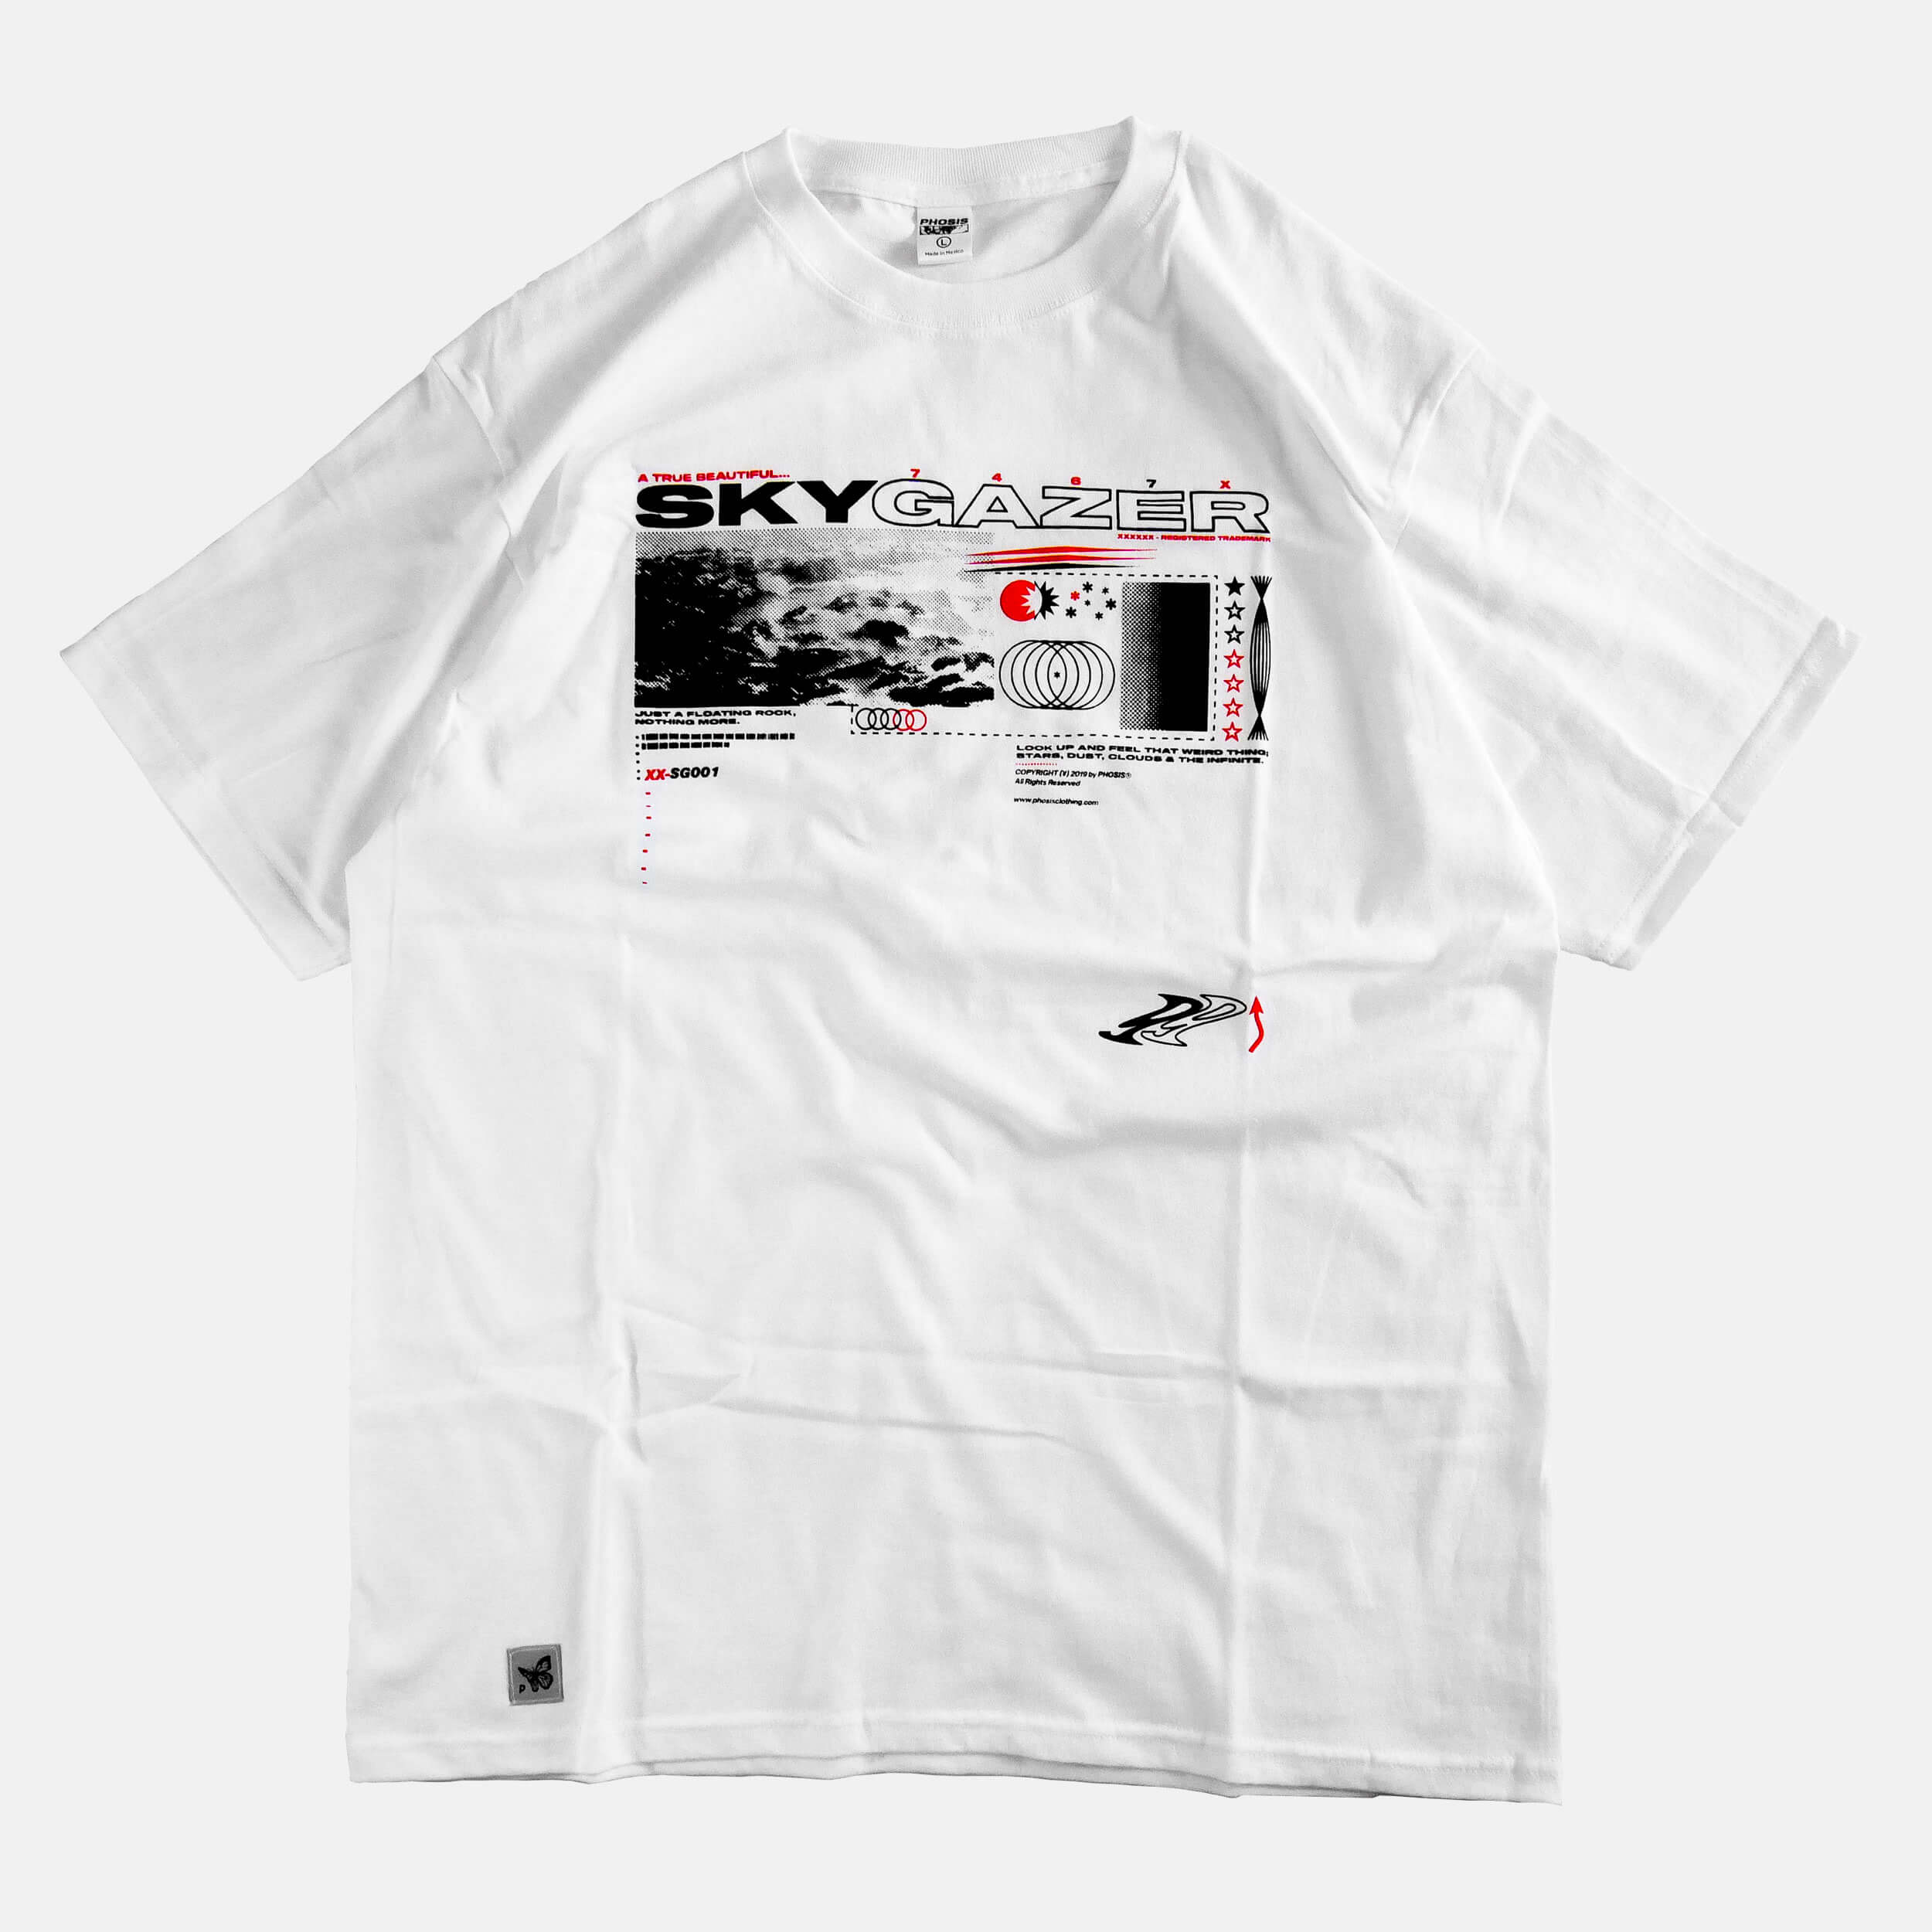 Front view of the screen-pinted SKYGAZER white t-shirt from PHOSIS Clothing